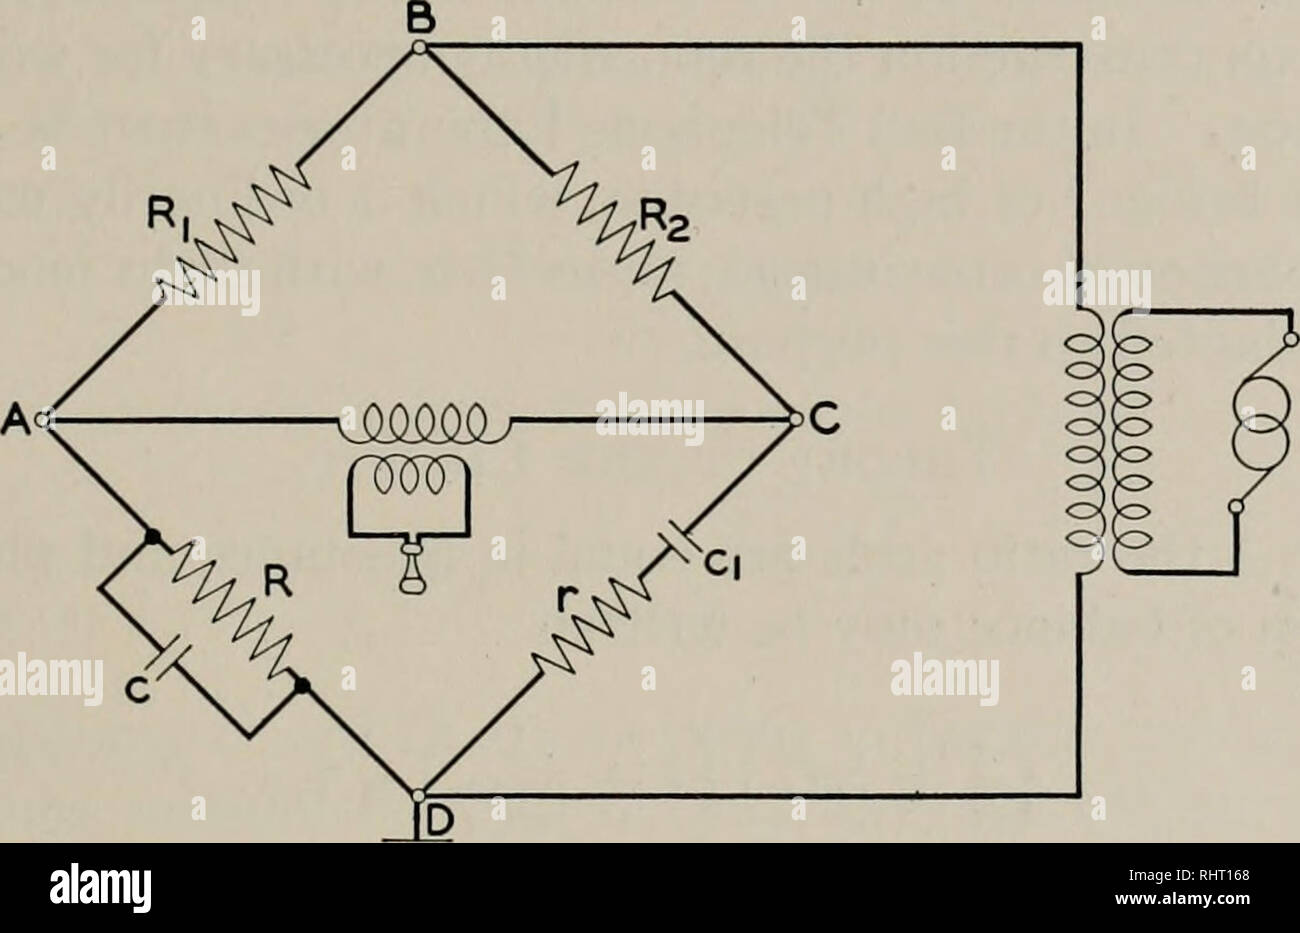 Please Present The Circuit Of An Electric Bell Using Symbols For